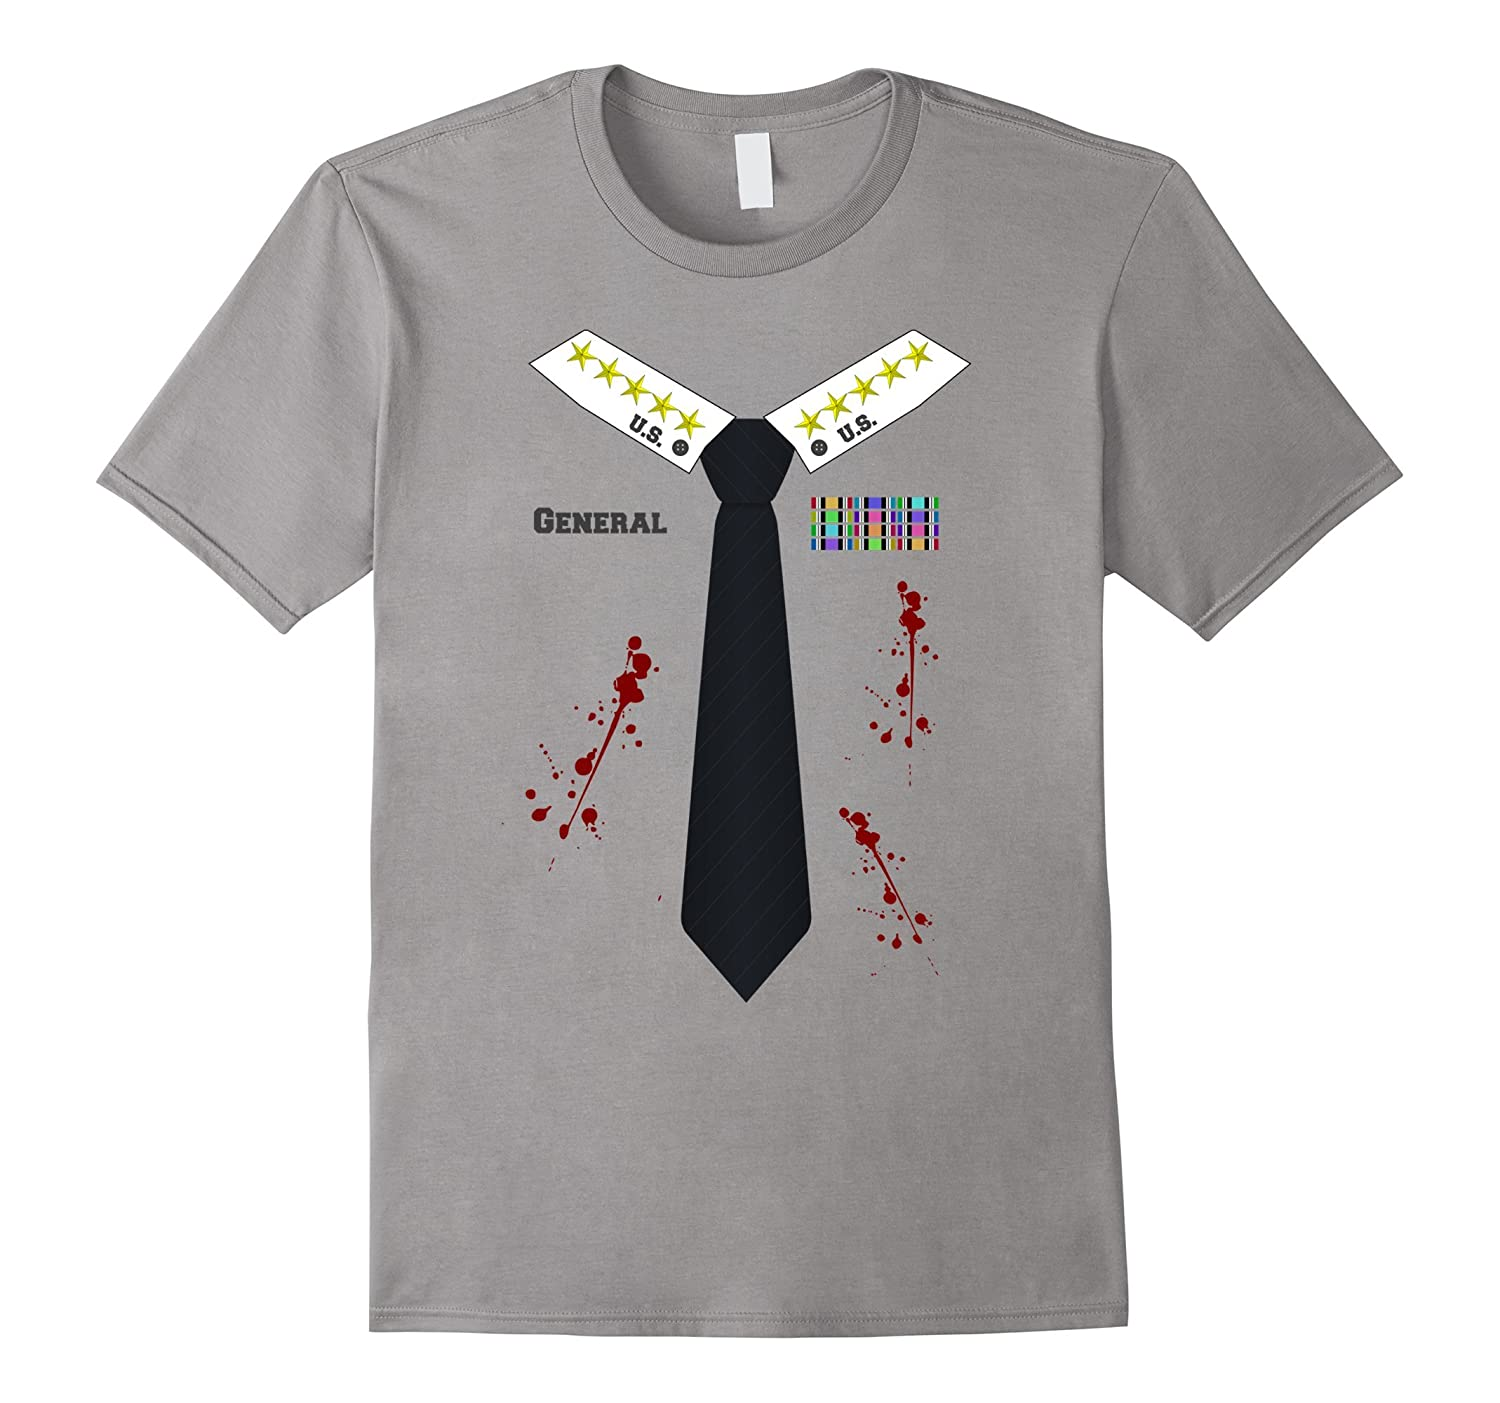 Bloody or Zombie Army General Halloween Costume T-shirt